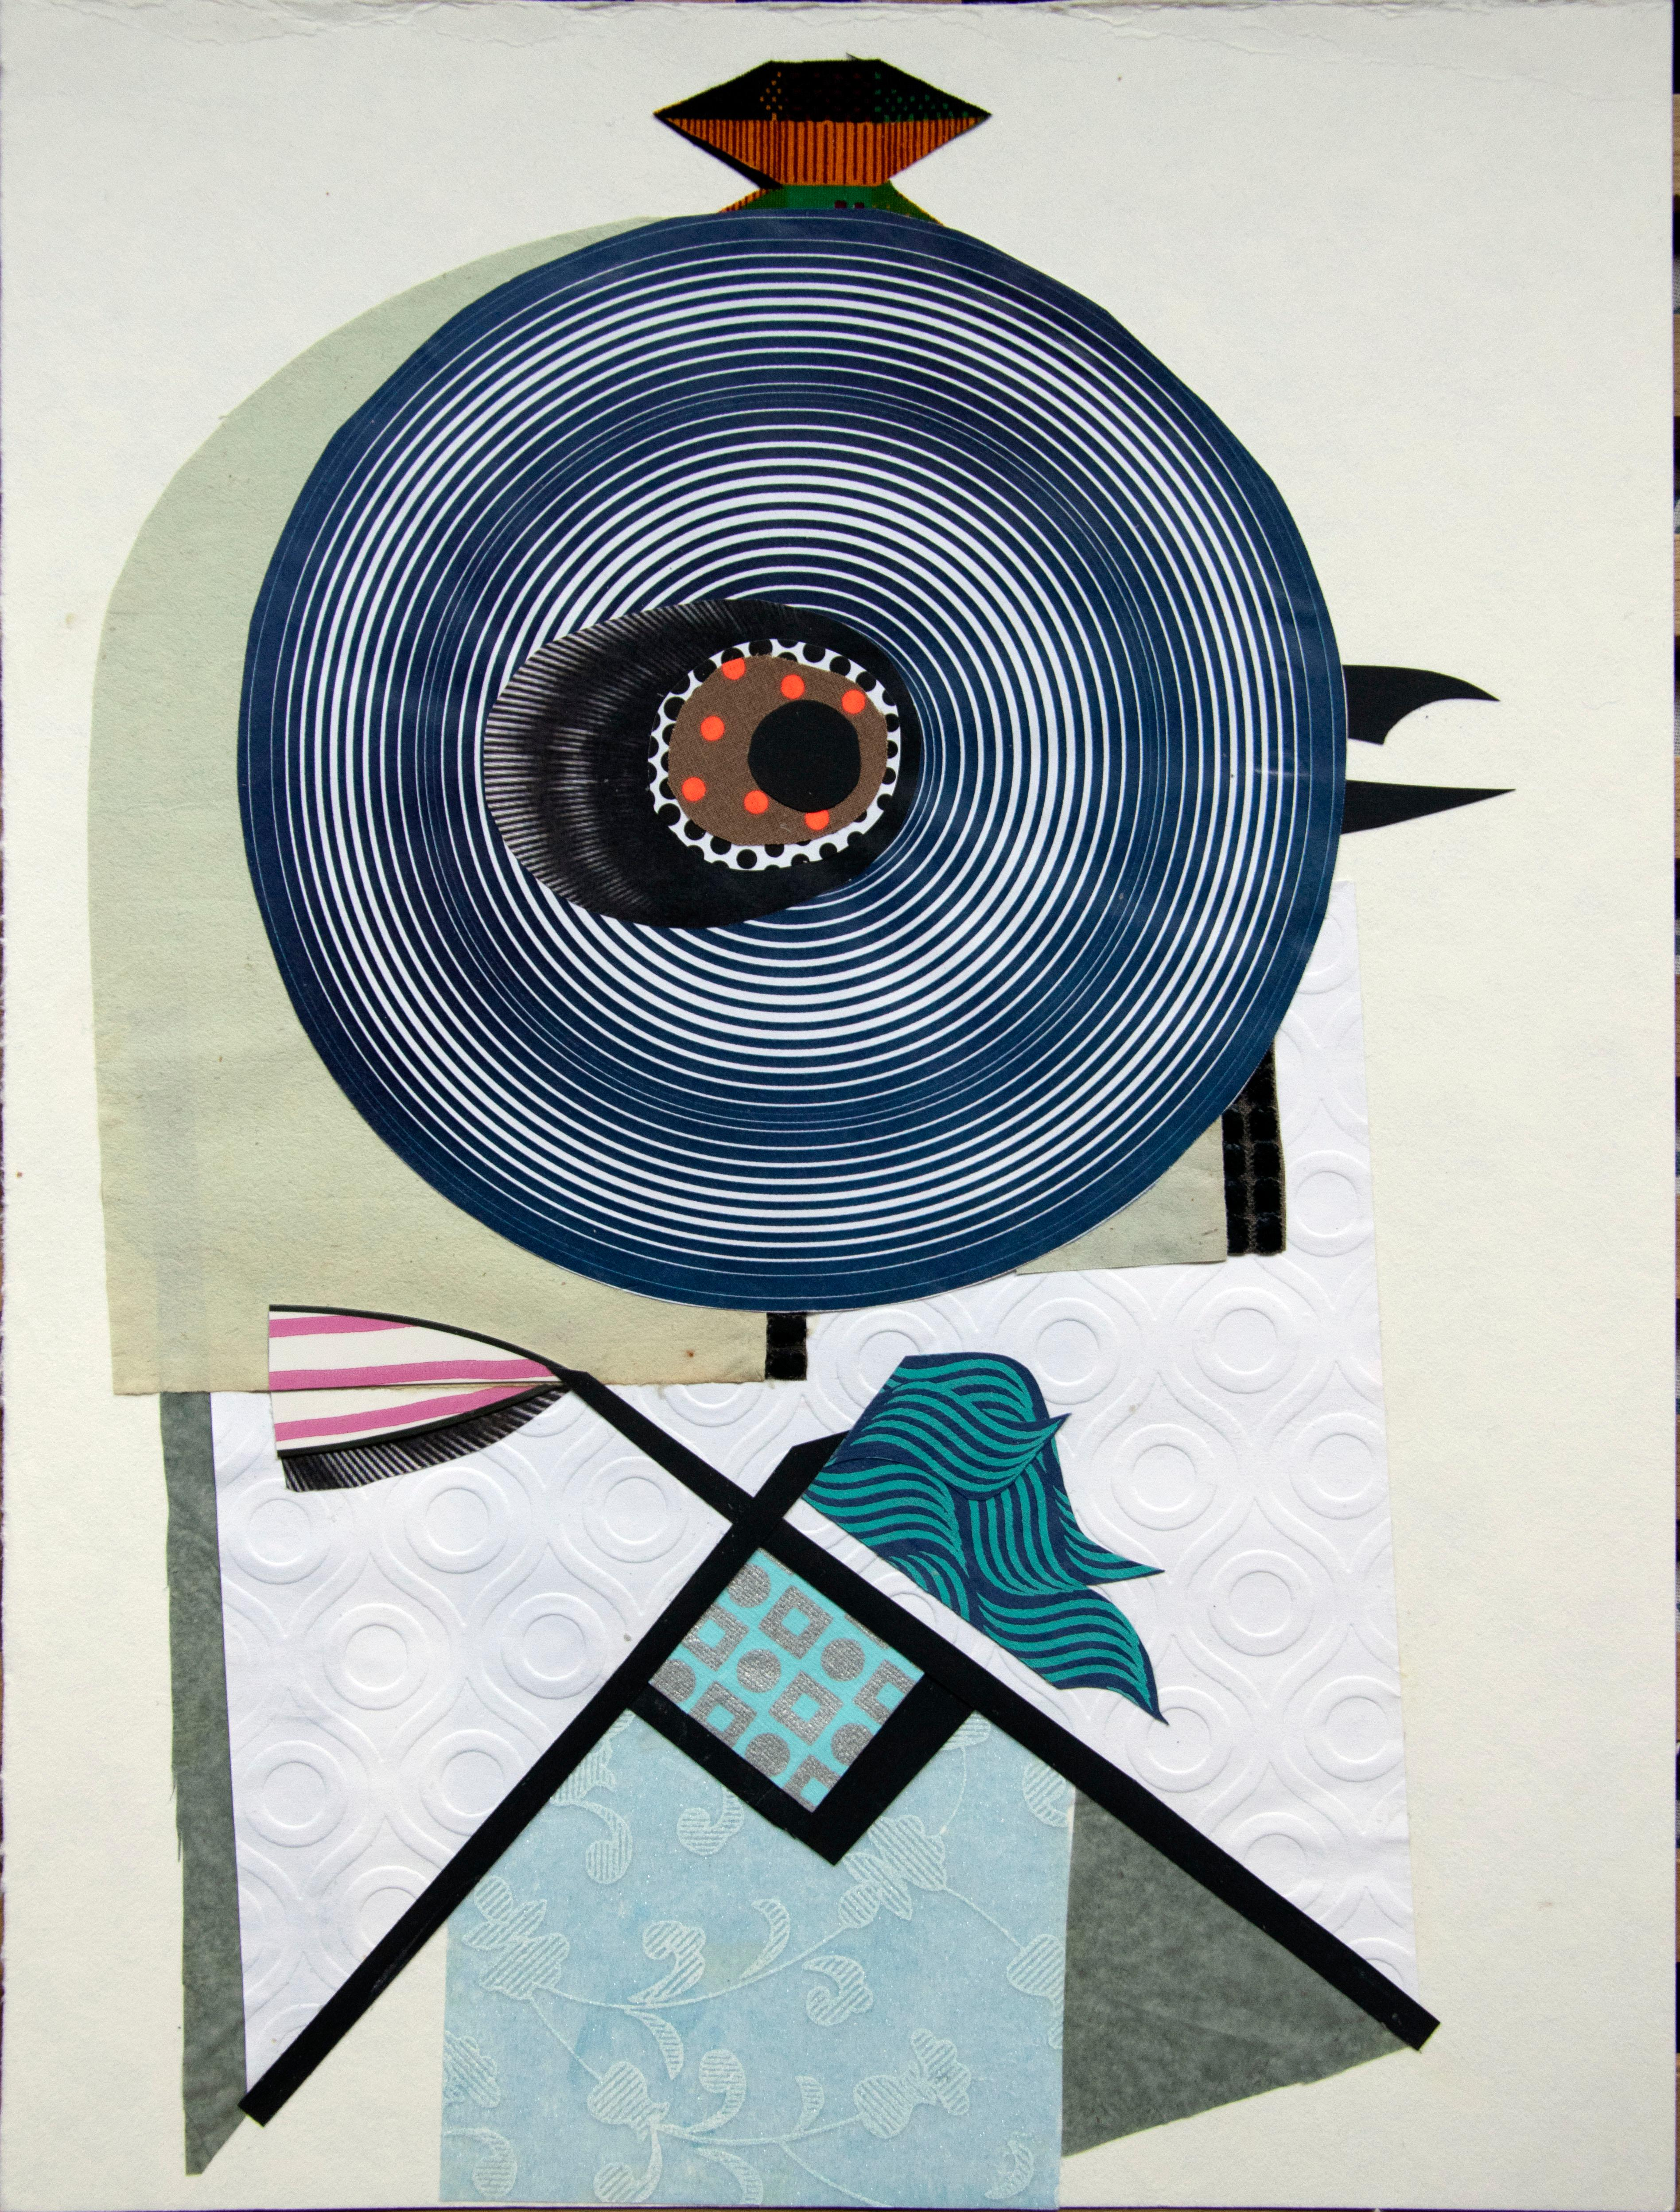 The Maid - Contemporary, Blue, Green, White, 21st Century, Collage, Funny